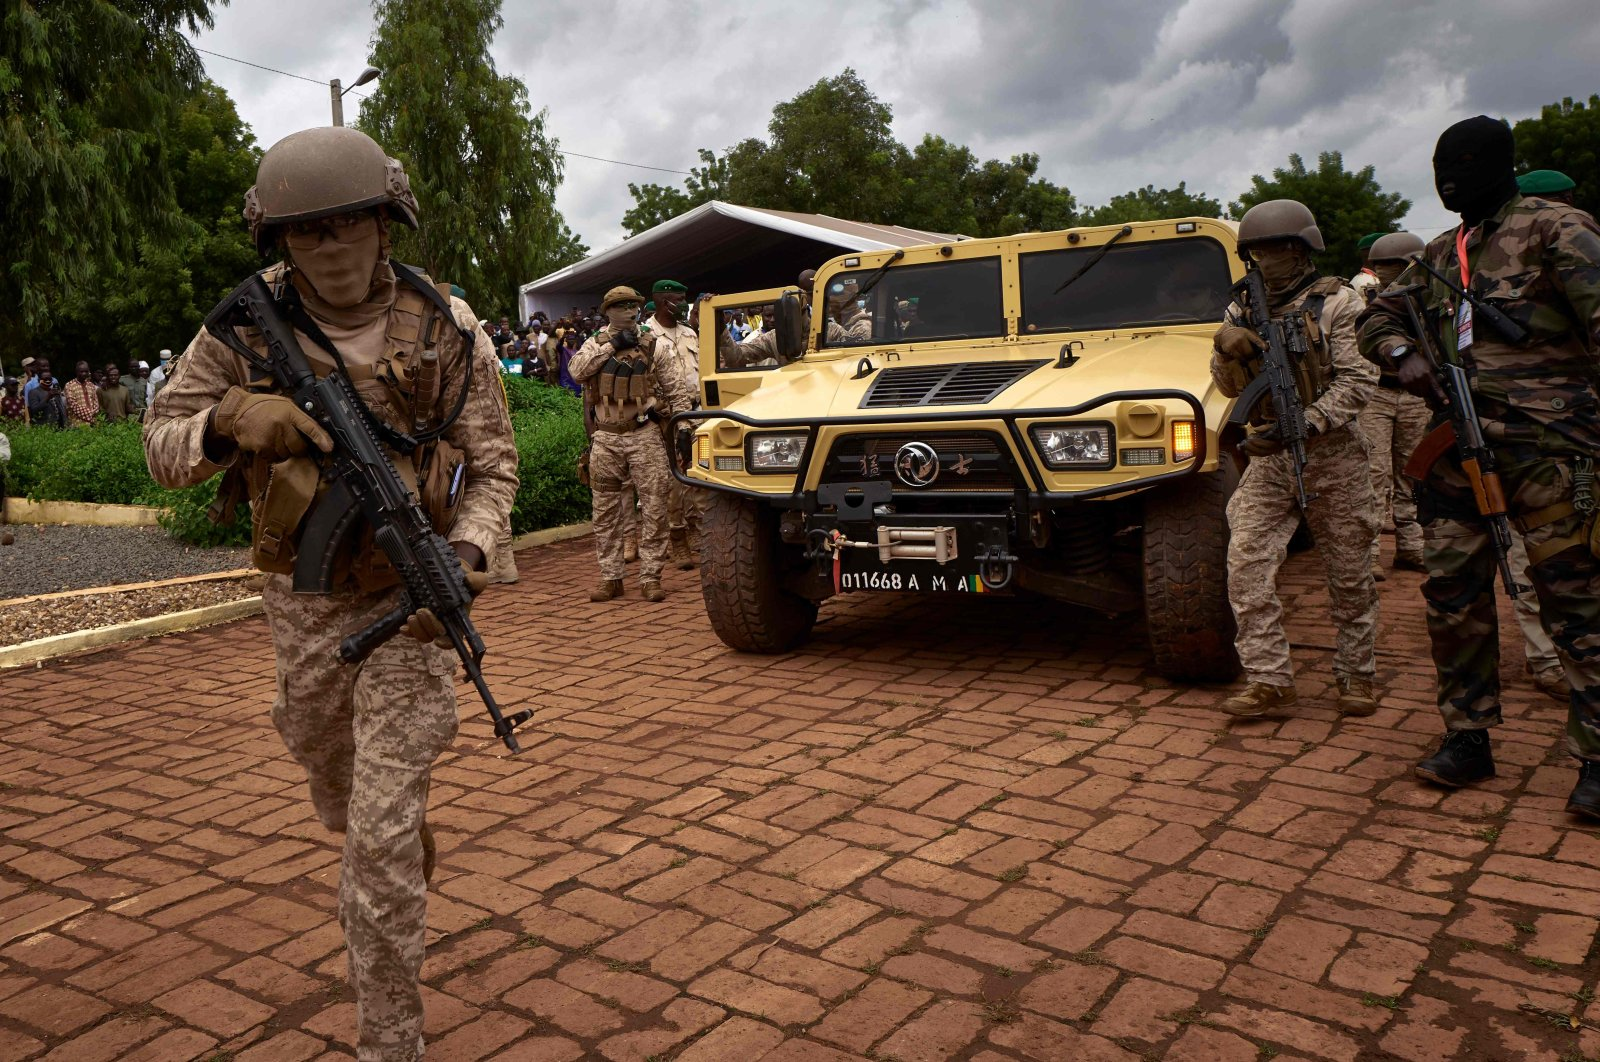 The armored vehicle of Col. Assimi Goita (C) arrives at the funeral of former Mali President Gen. Moussa Traore in Bamako, Mali, Sept. 18, 2020. (AFP Photo)